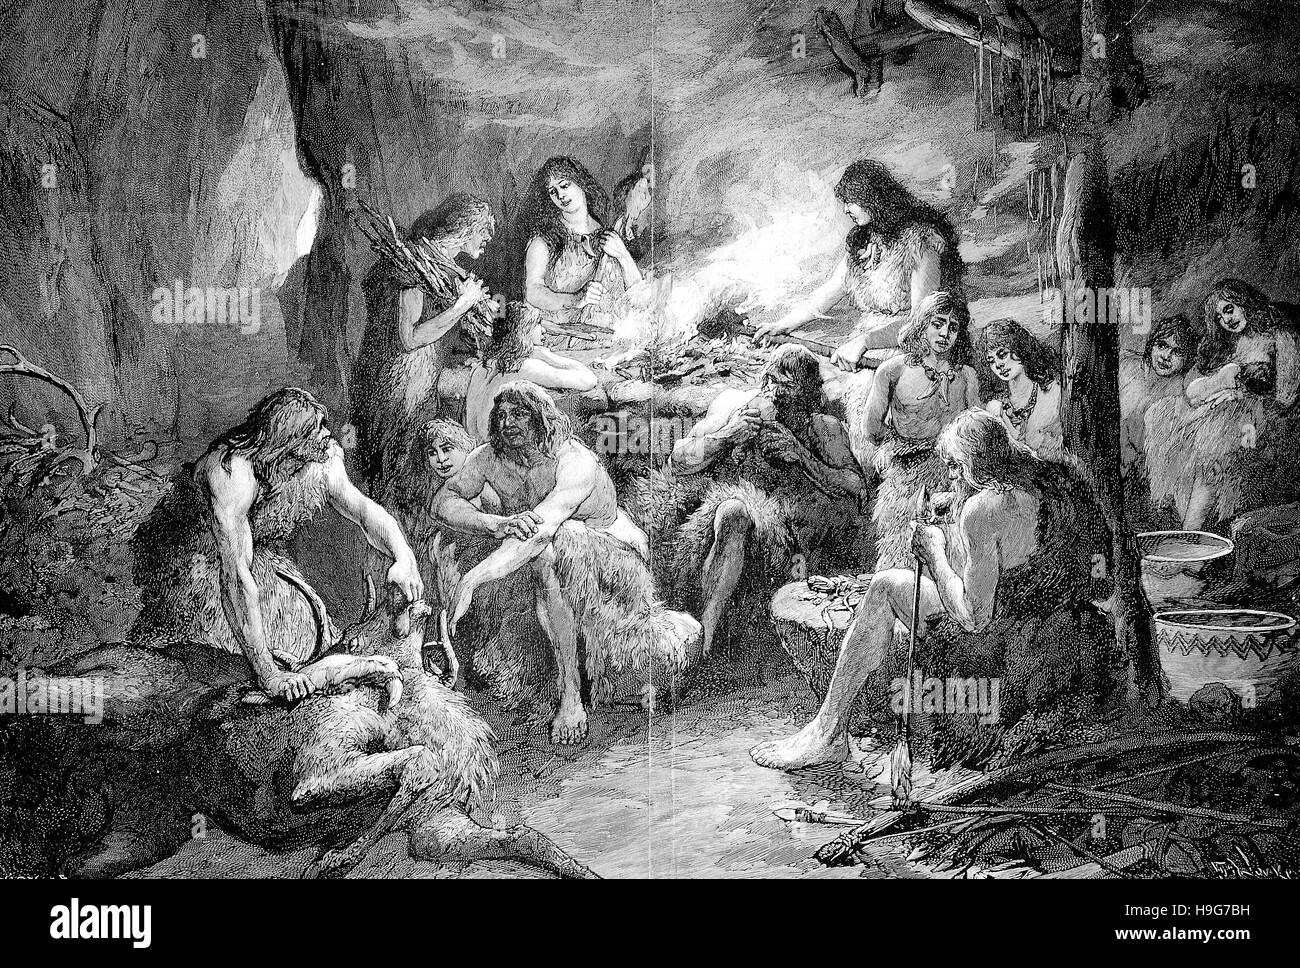 Life and activity of prehistoric people, cave dwellers in the Stone Age - Stock Image